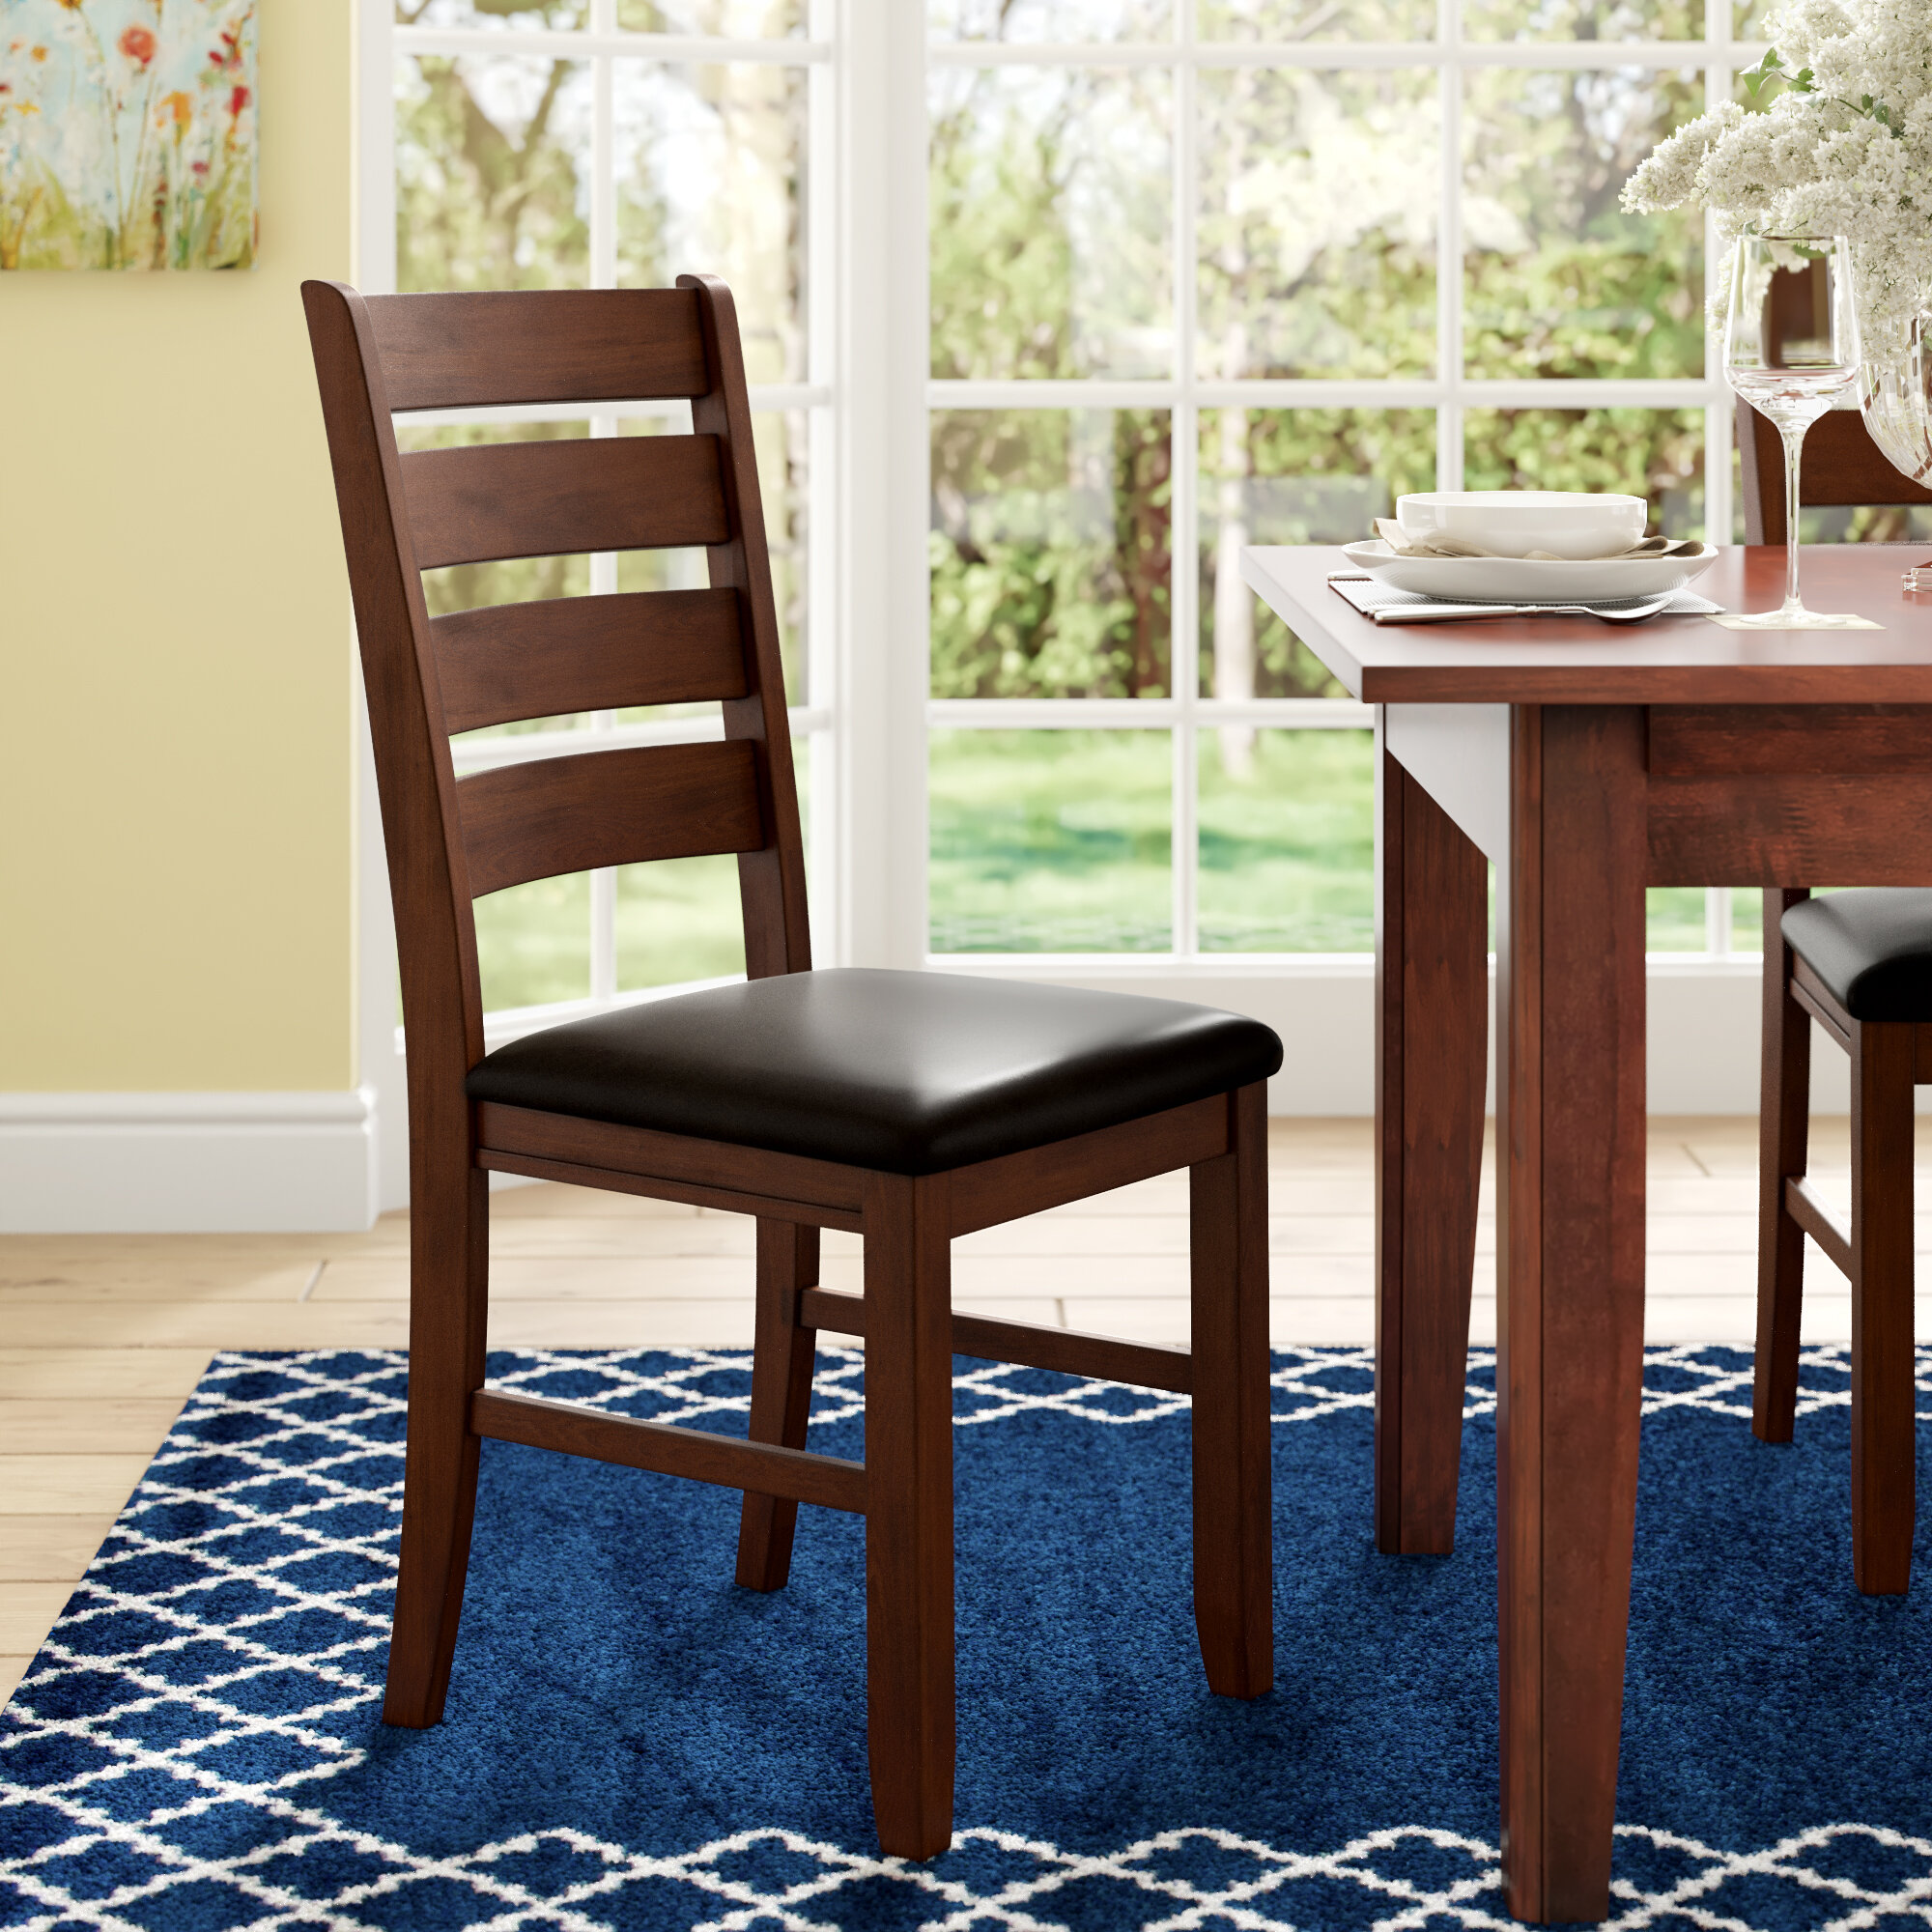 Stephentown Solid Wood Dining Chair